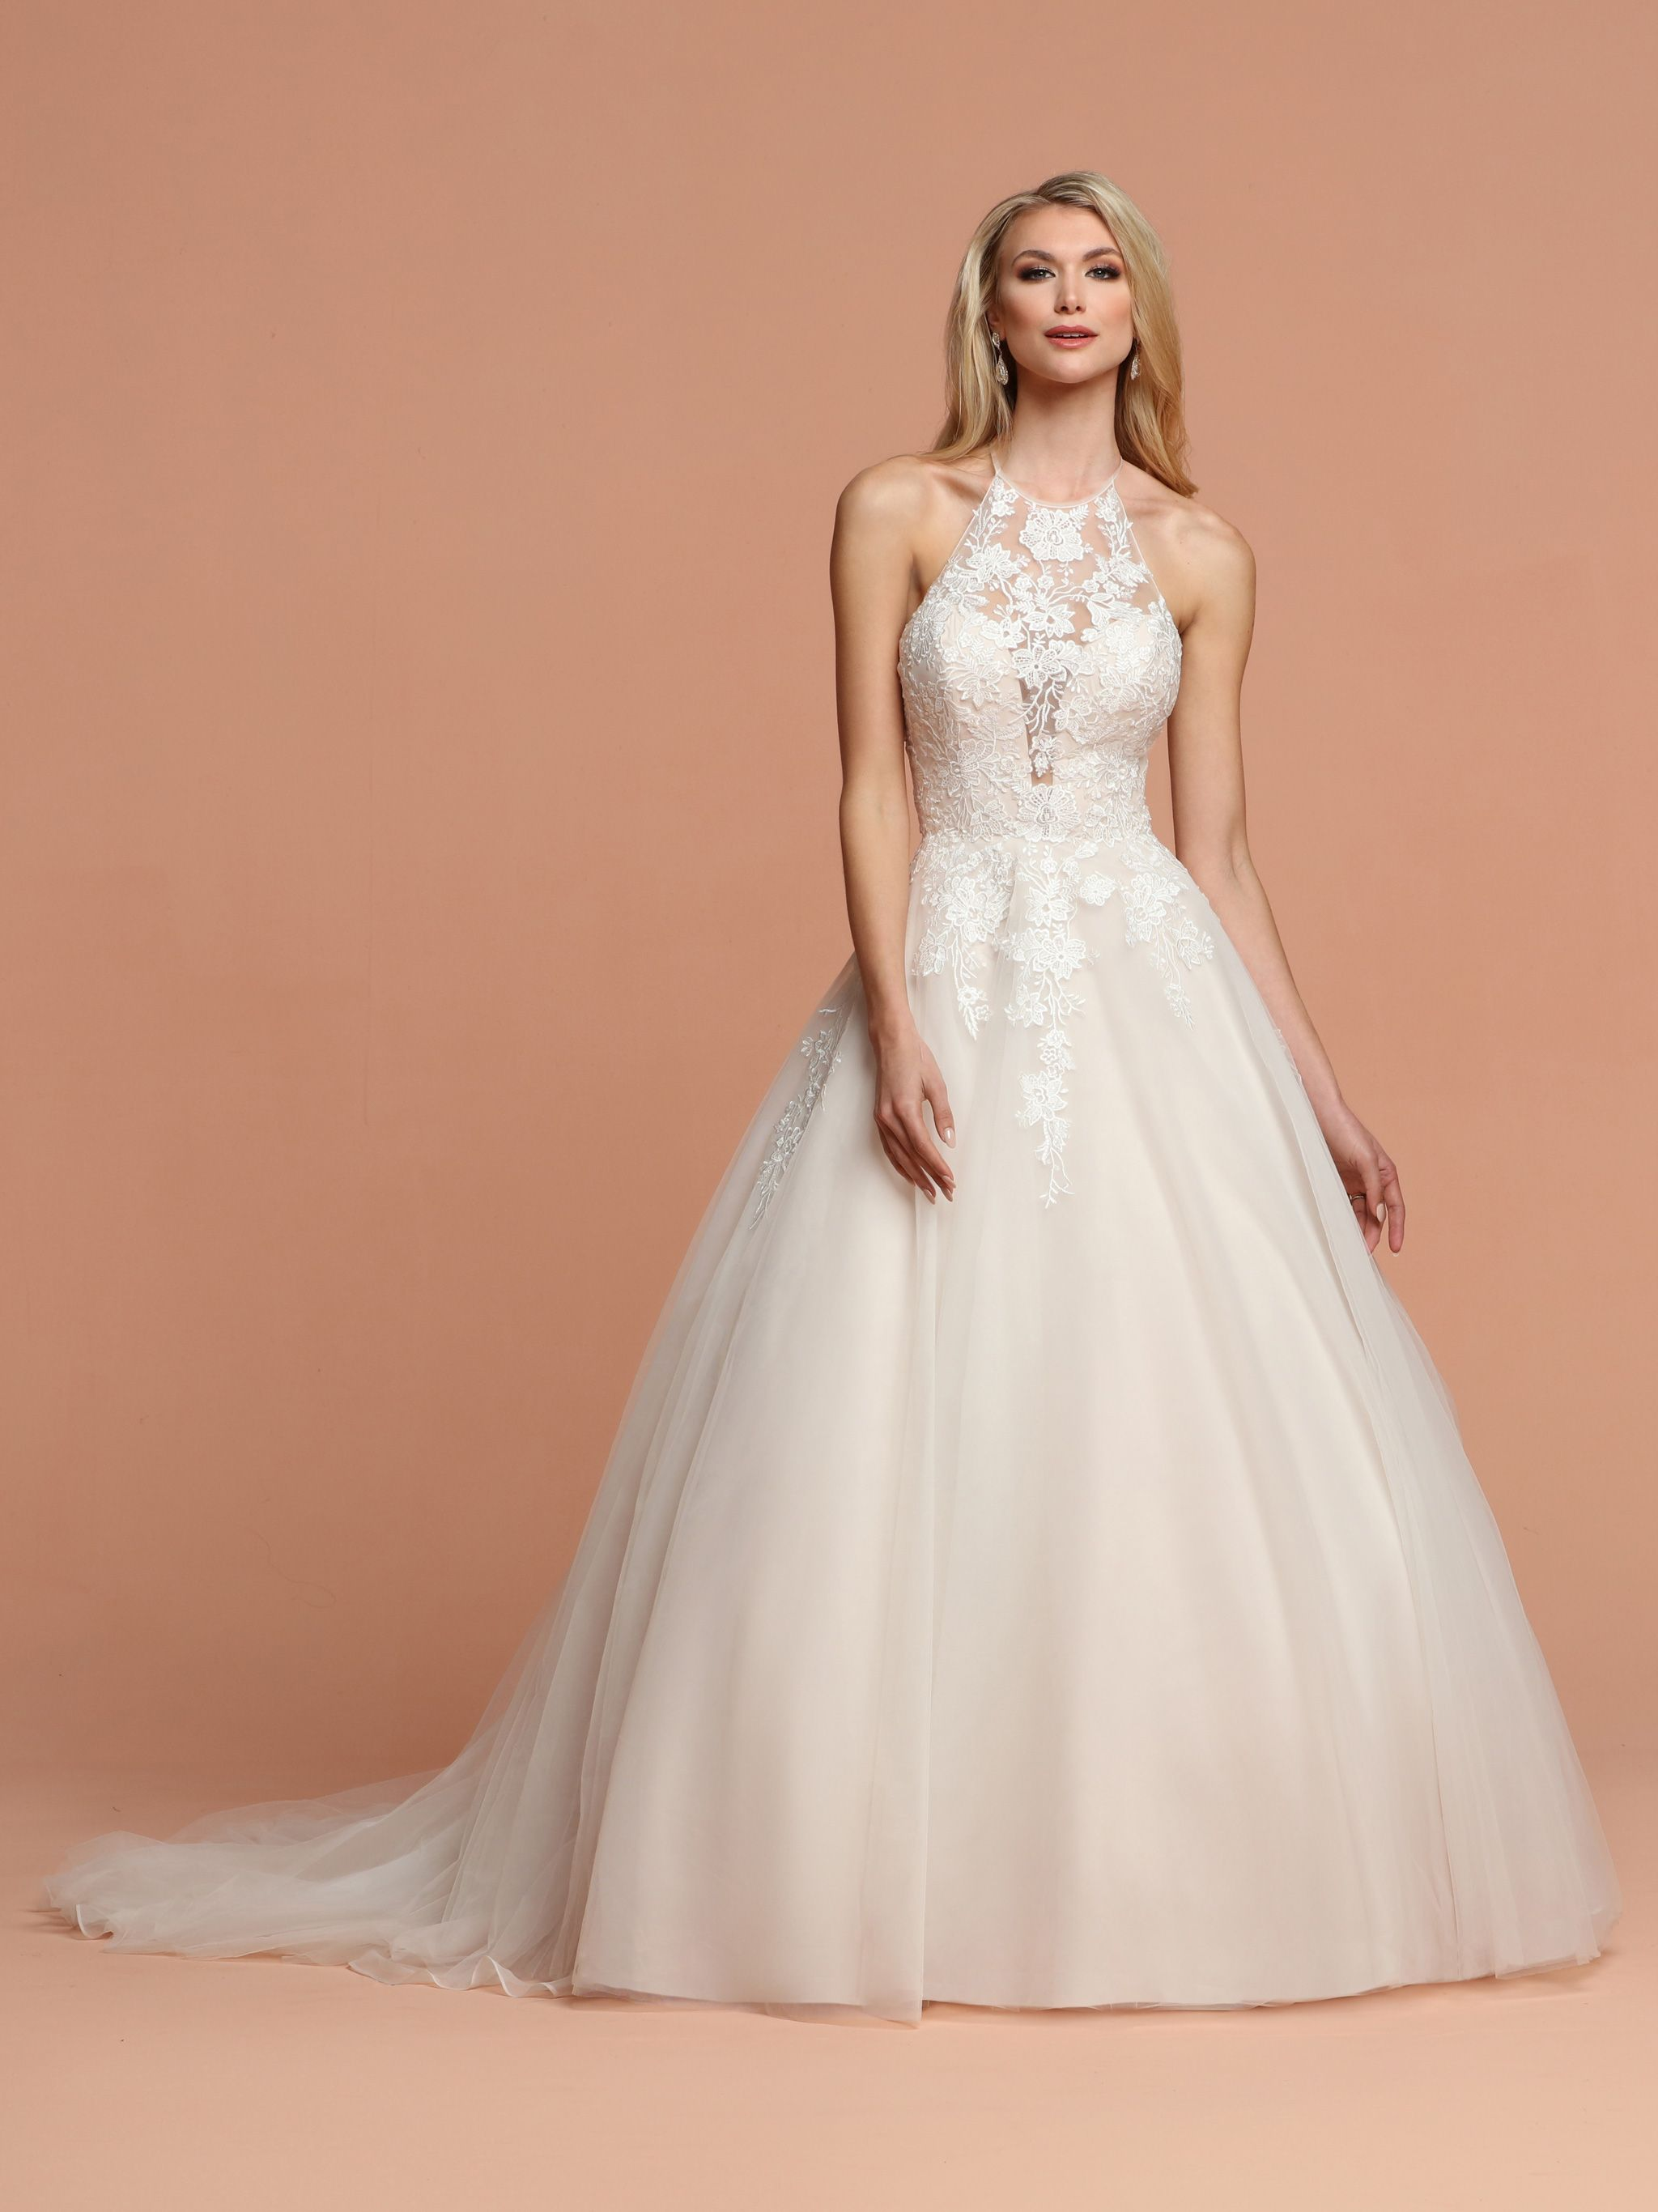 Effortless Beauty Tulle Wedding Dress Ballgown Ball Gowns Wedding Wedding Dress Styles